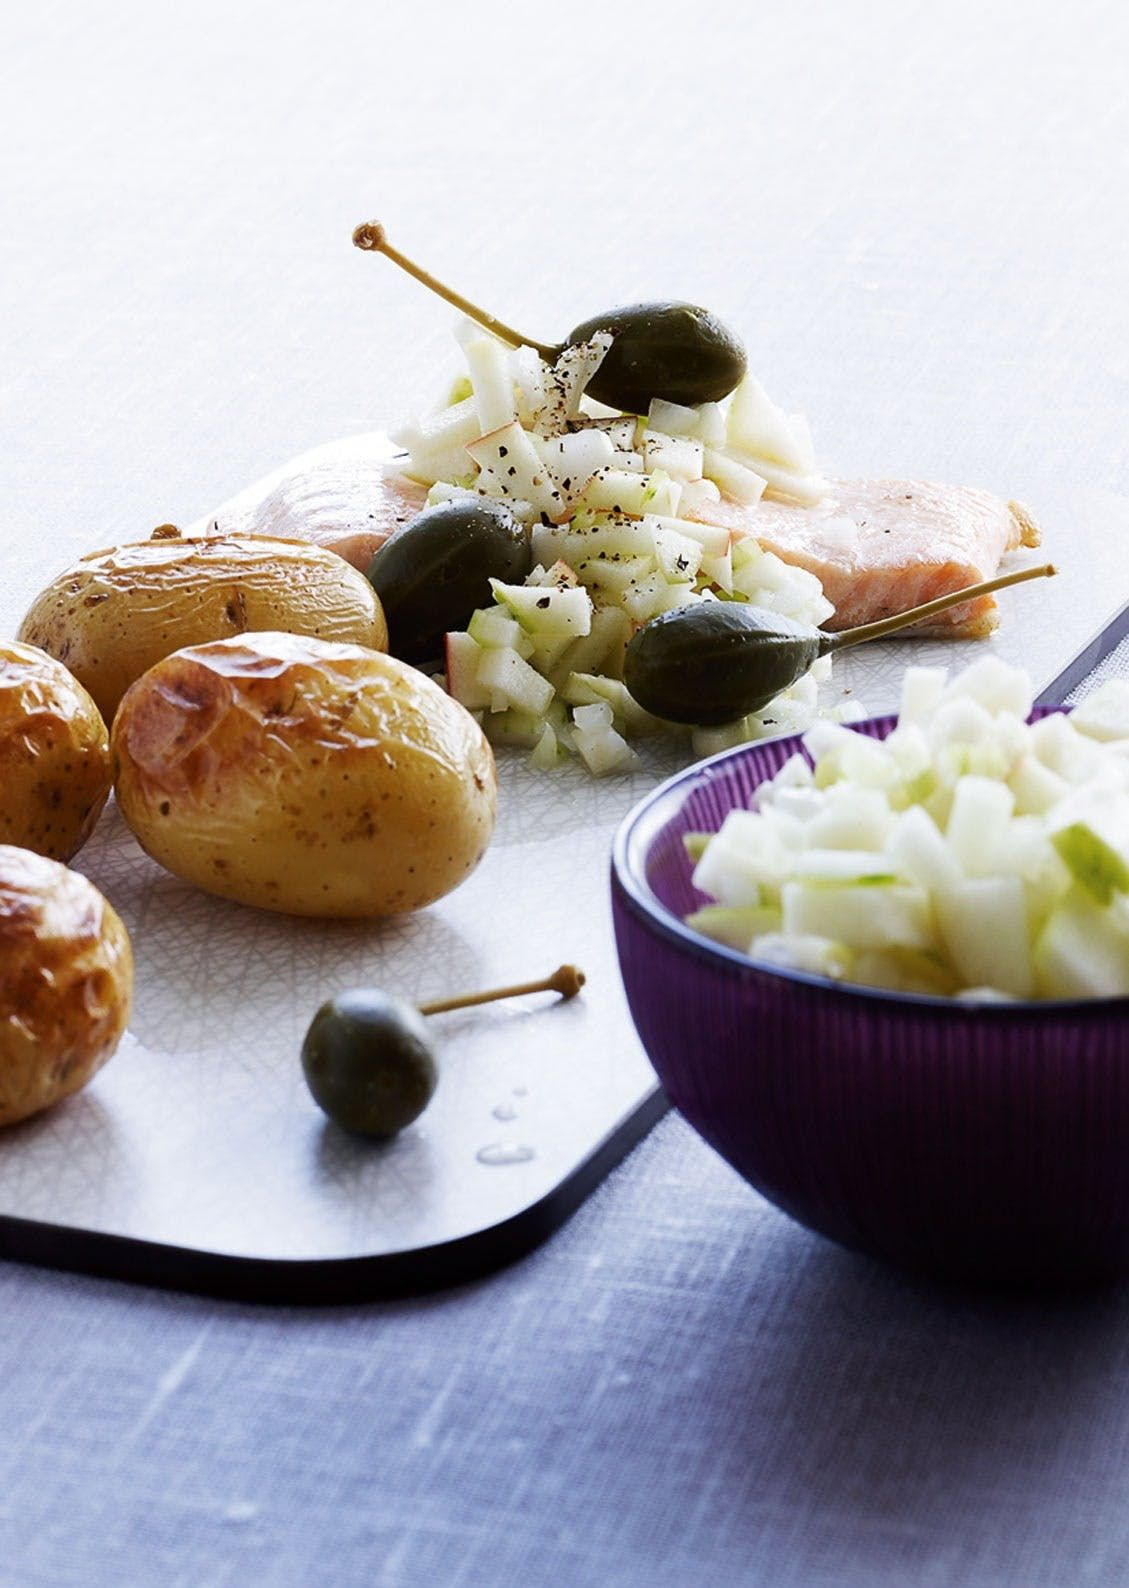 Photo of Salmon and potatoes with truffle oil and apple salad